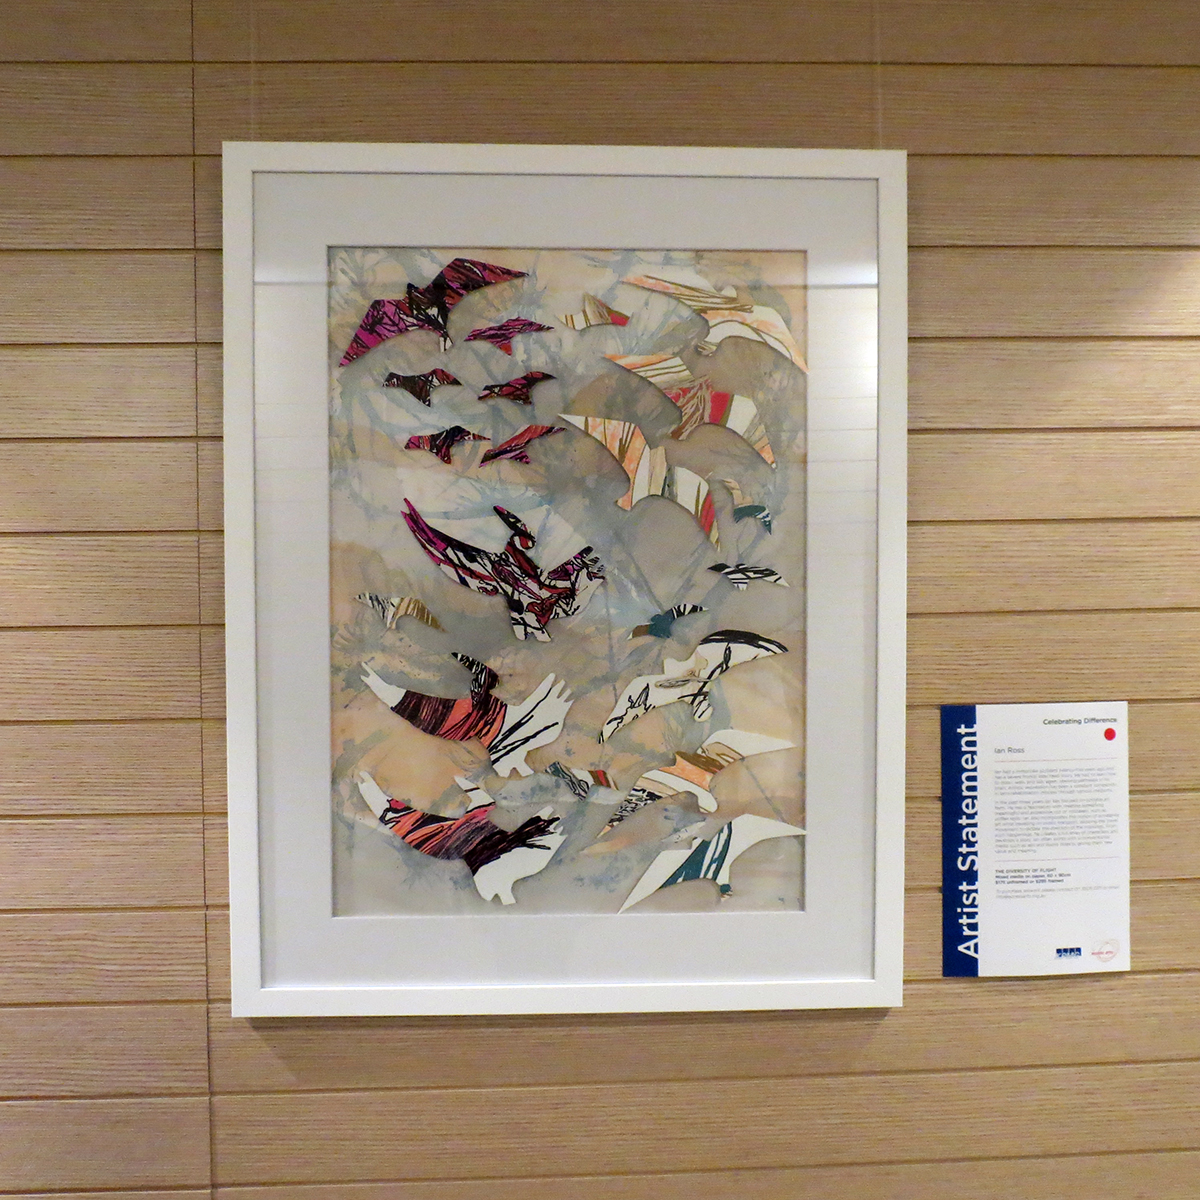 Framed artwork on a wall with cut out paper birds of different sizes